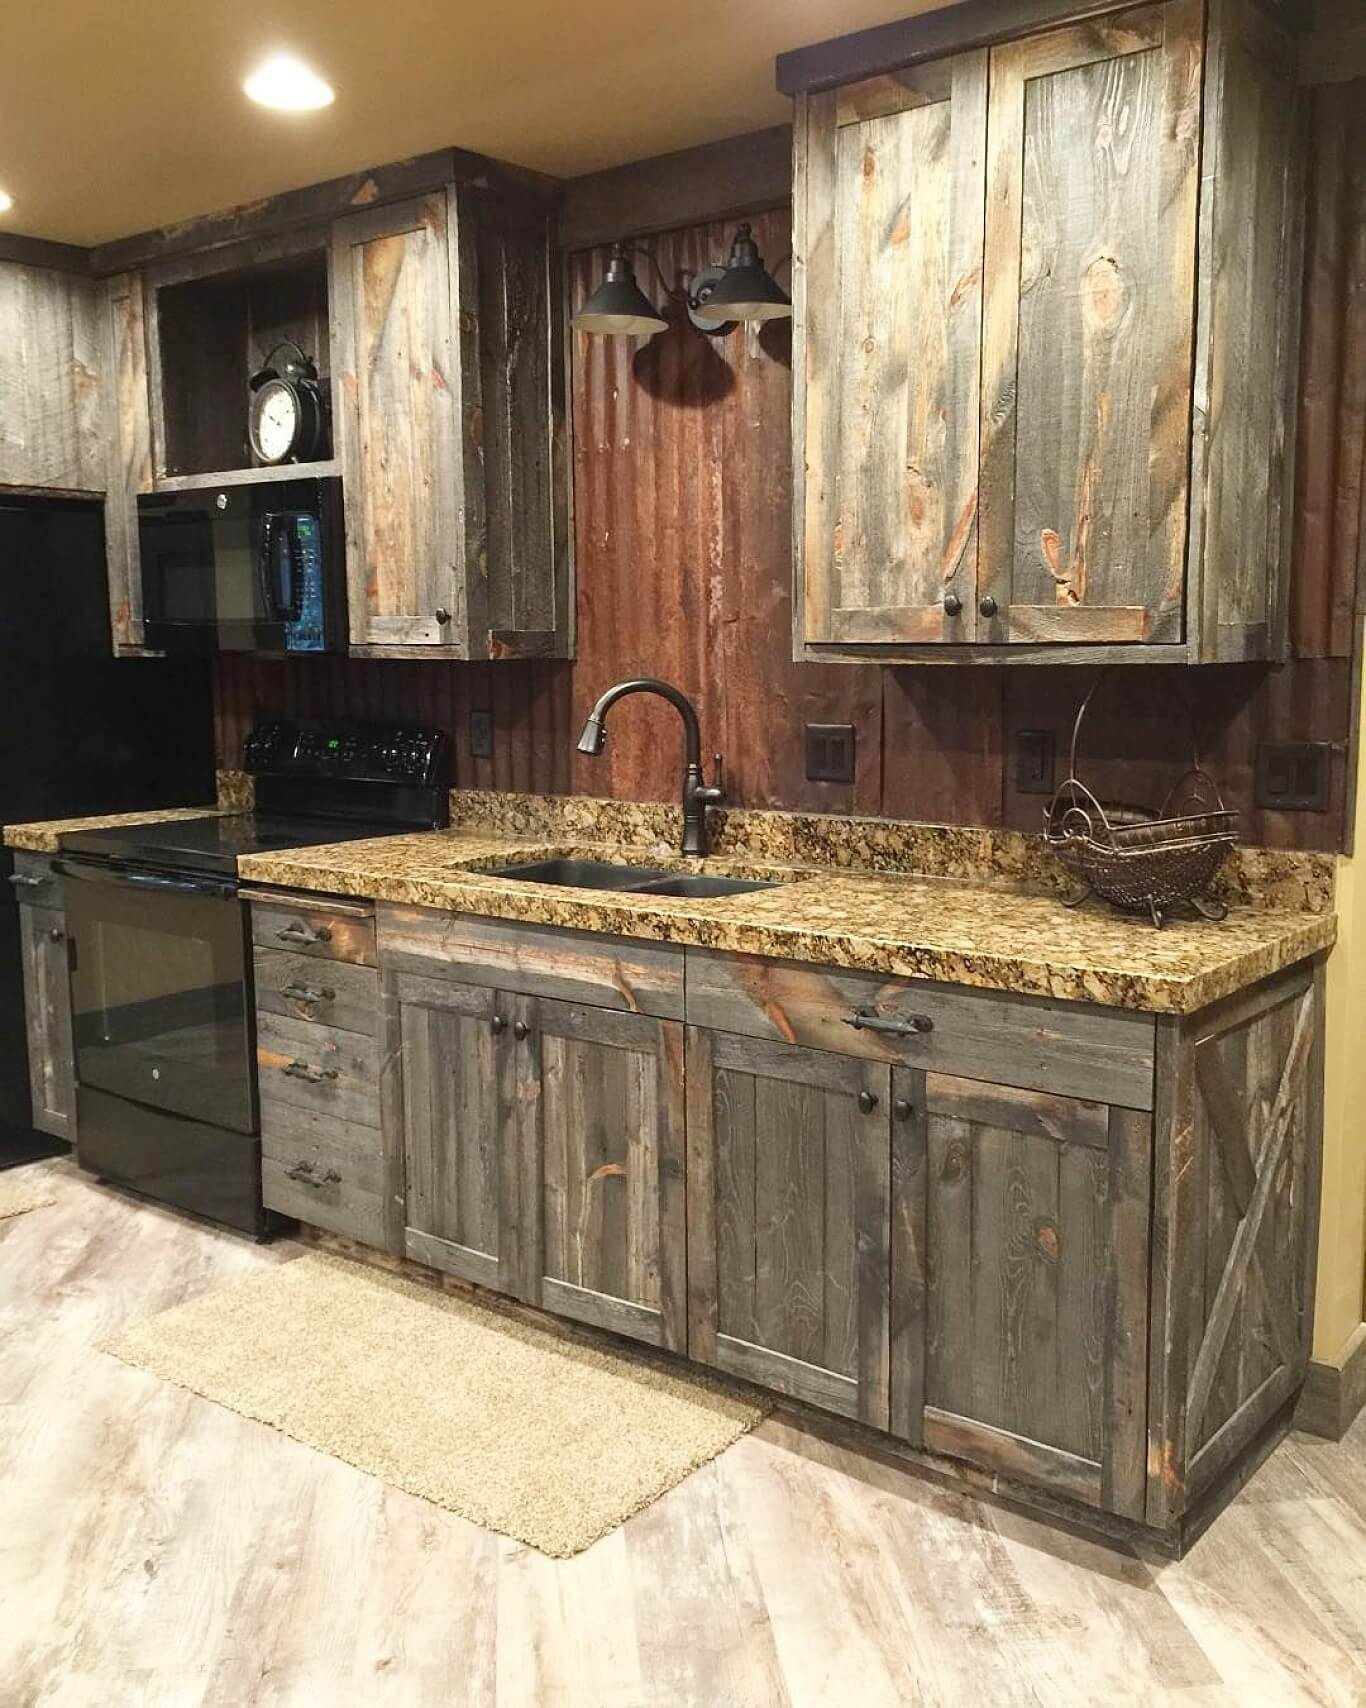 32 Charming Ways To Add Reclaimed Wood To Your Kitchen And Make